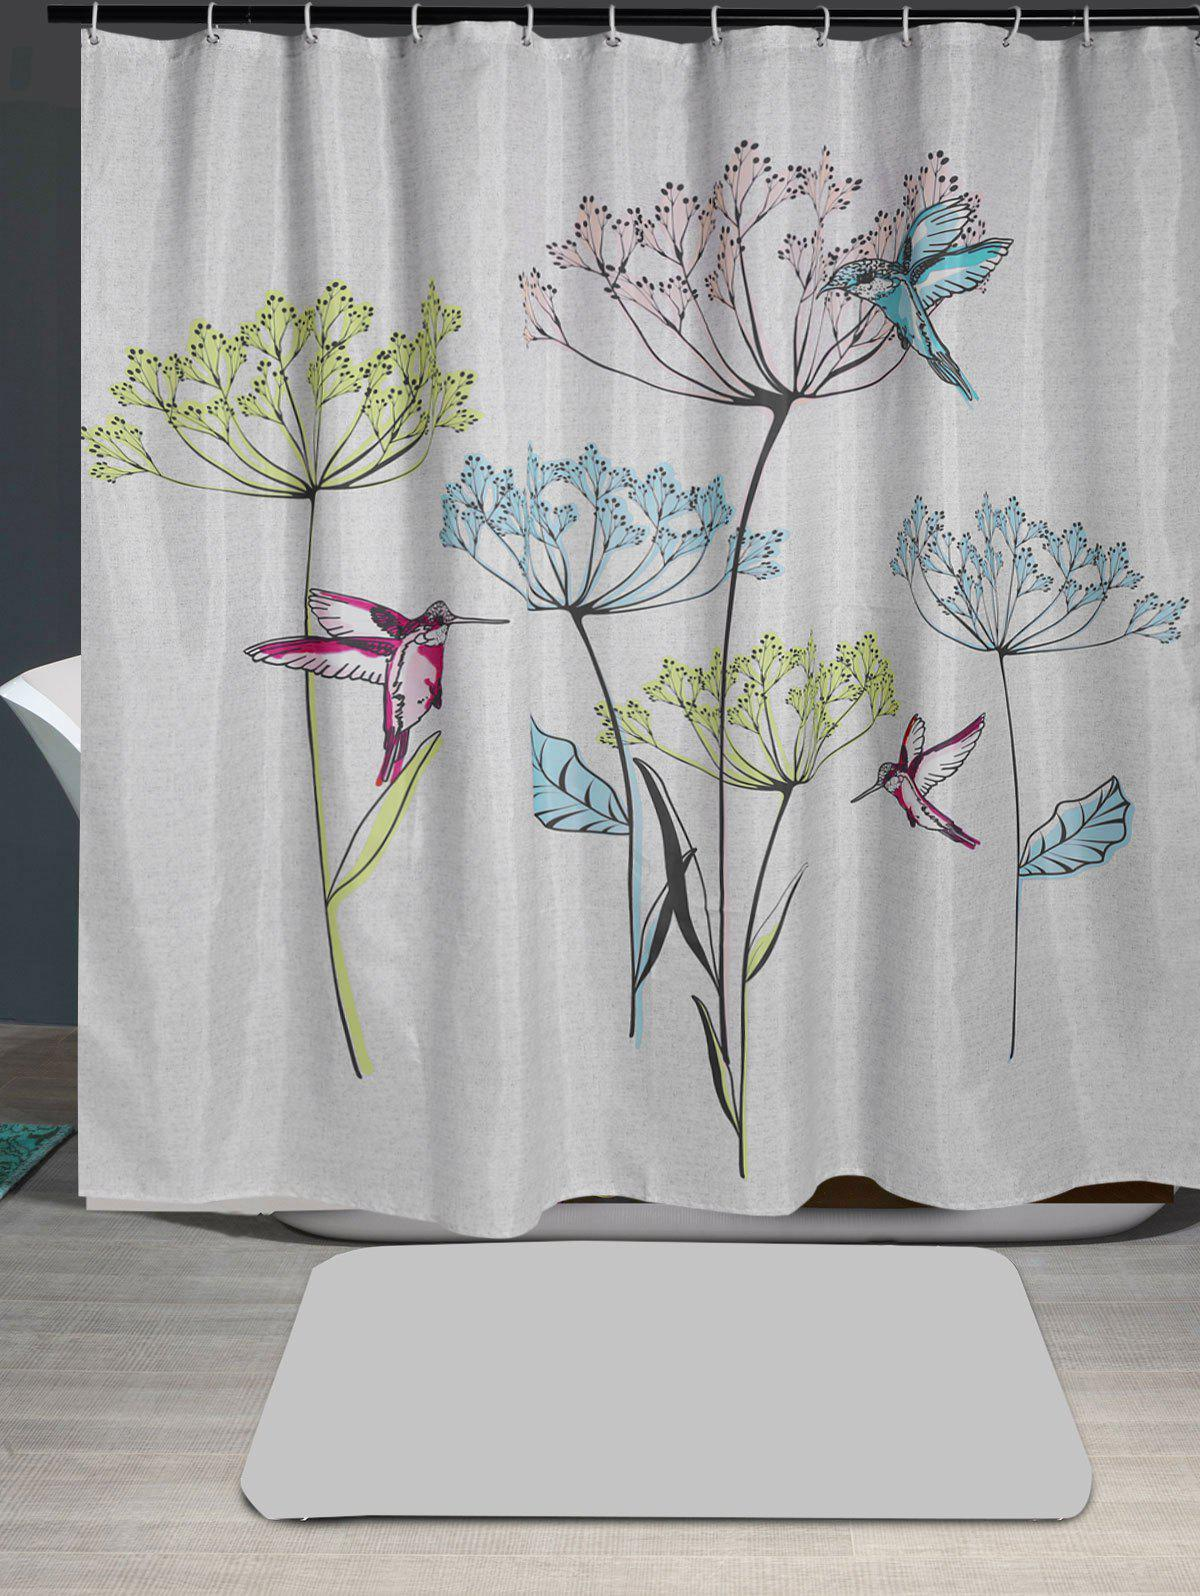 Latest Waterproof Dandelion Bird Print Shower Curtain